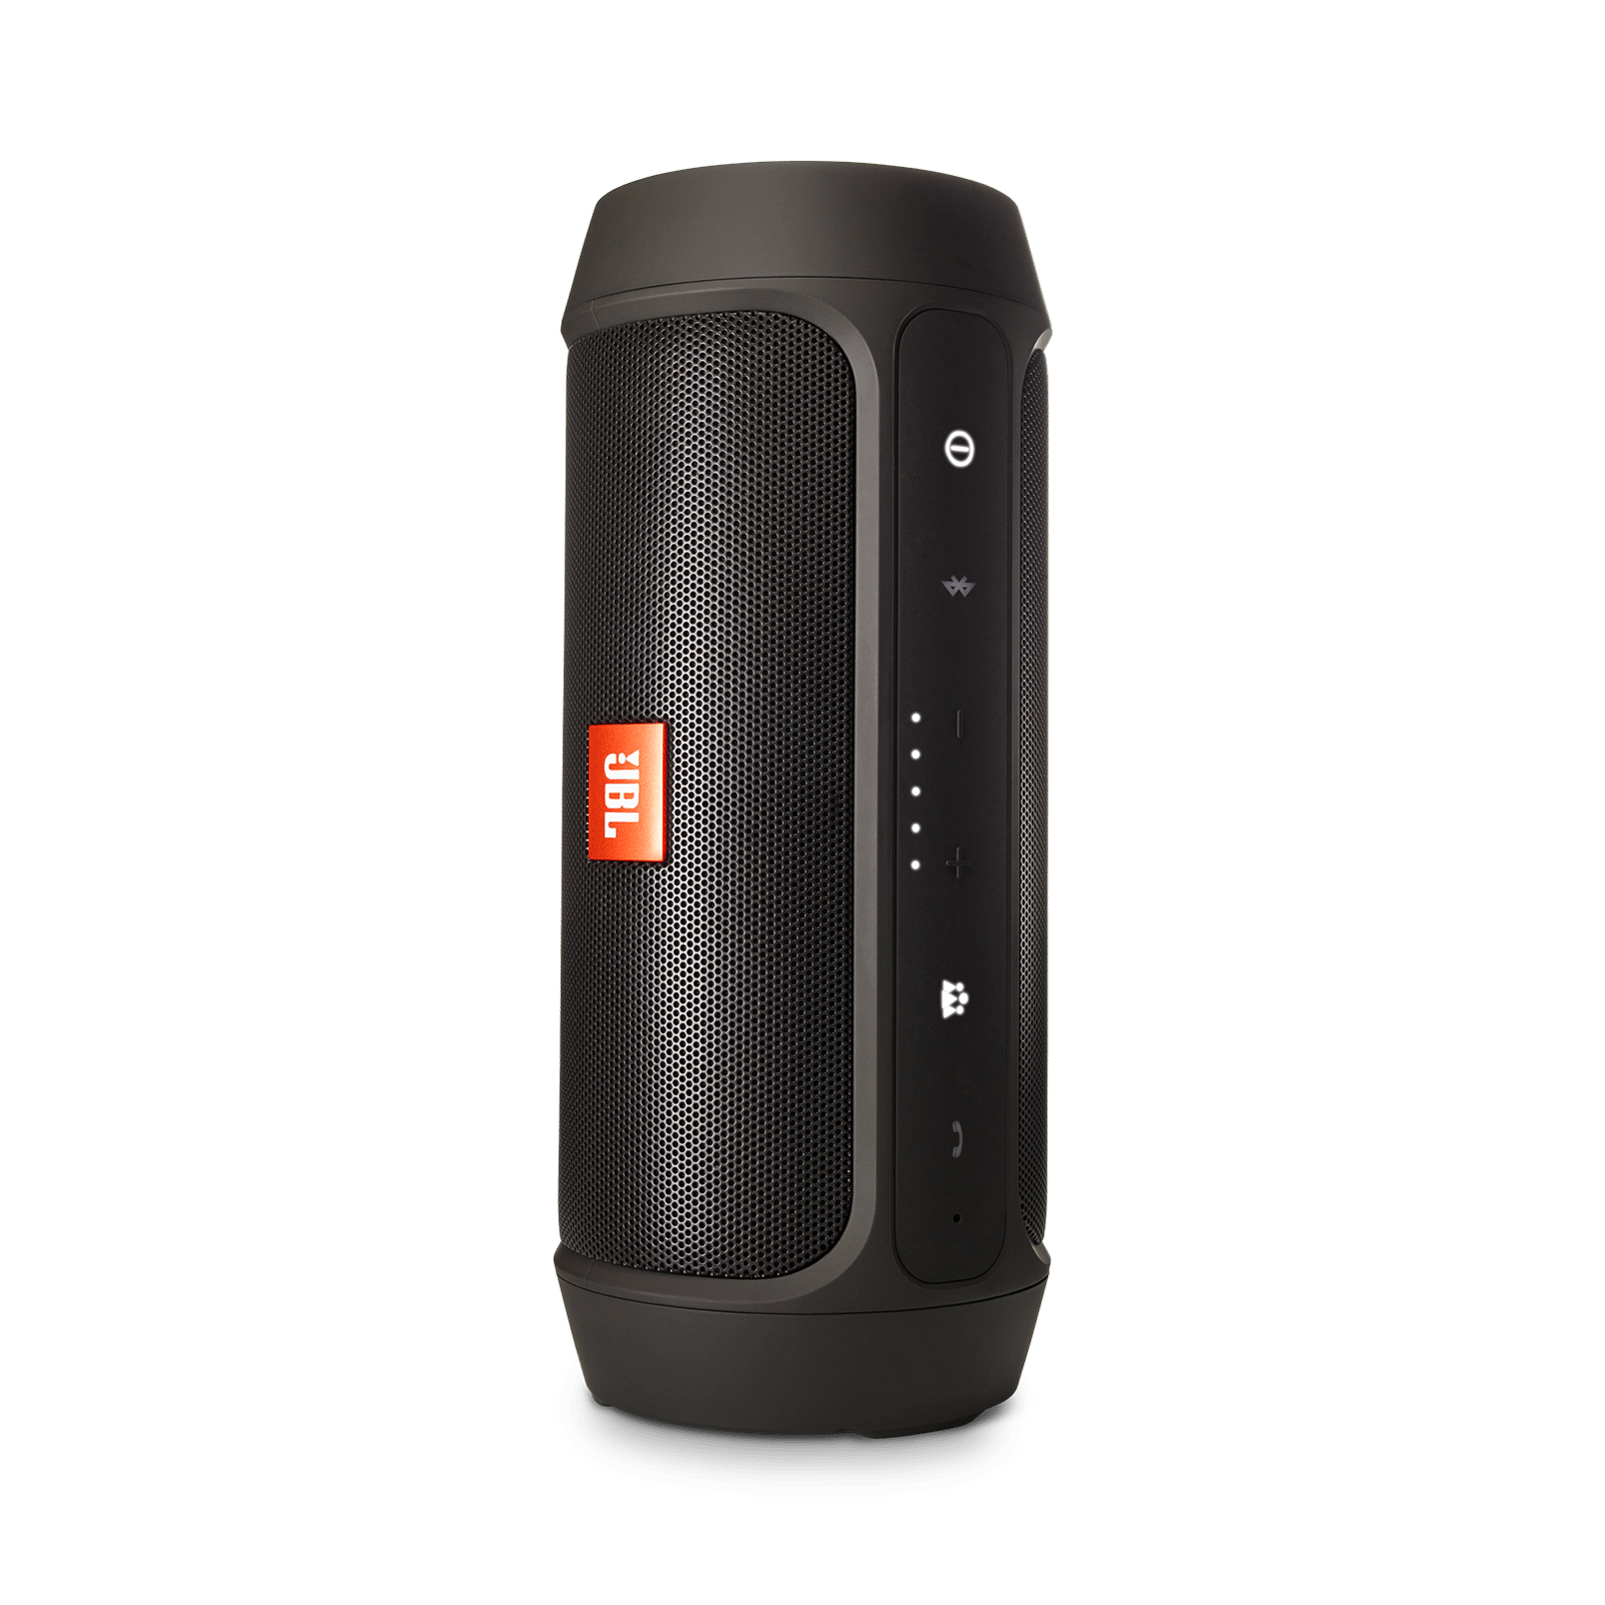 Jbl speaker png. Charge plus portable bluetooth